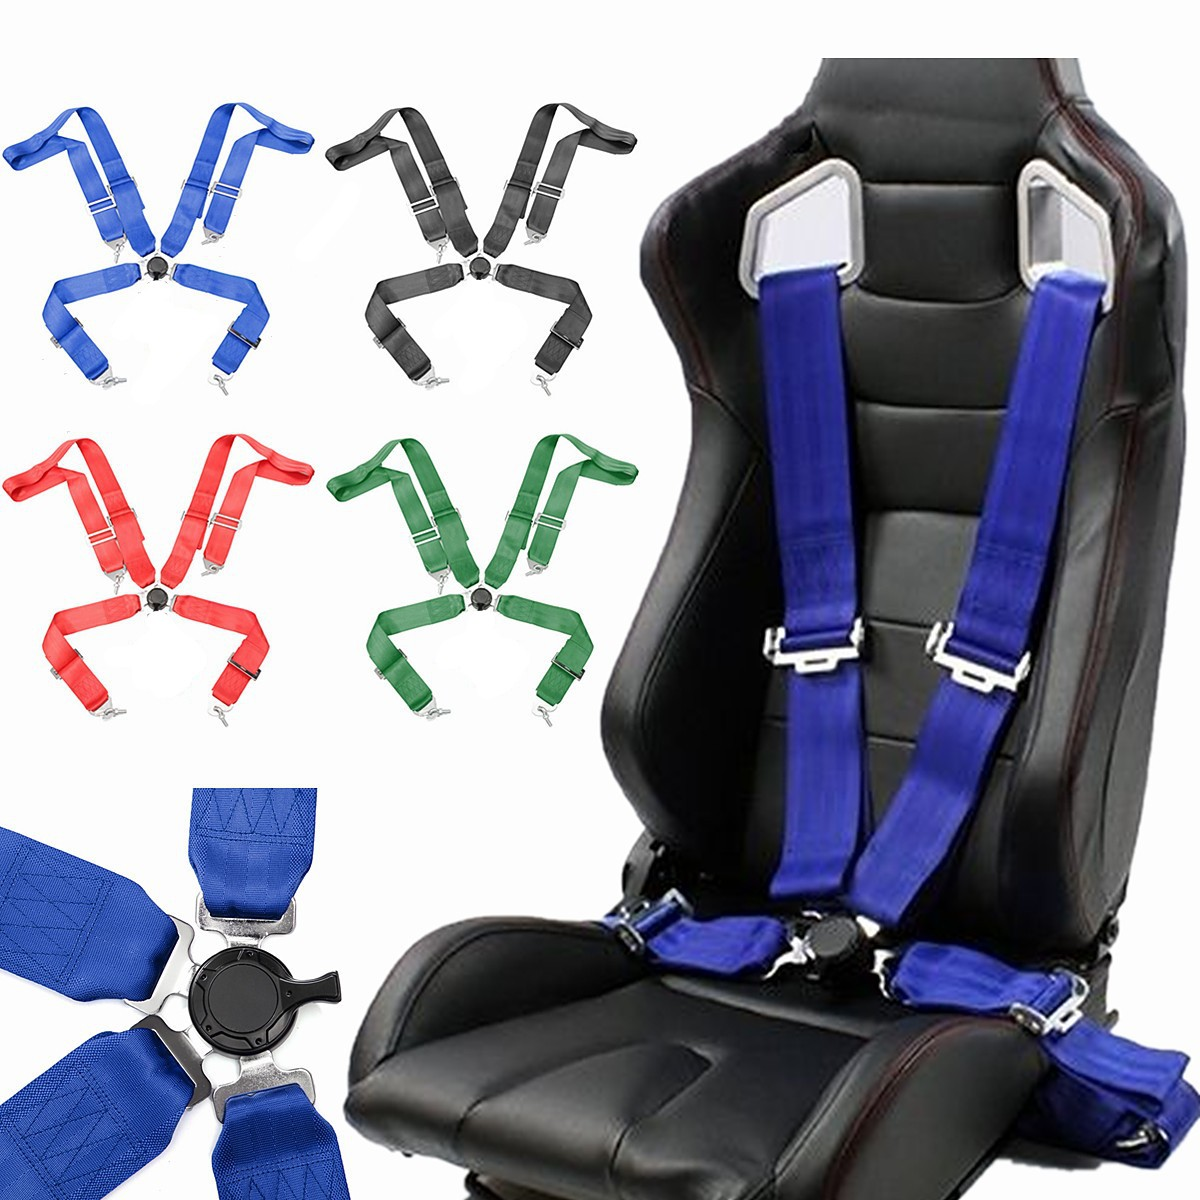 Universal Auto Car 4 Point Racing Safety Nylon Harness Camlock Strap Seat Belt Vehicle Racing Safety Seatbelt